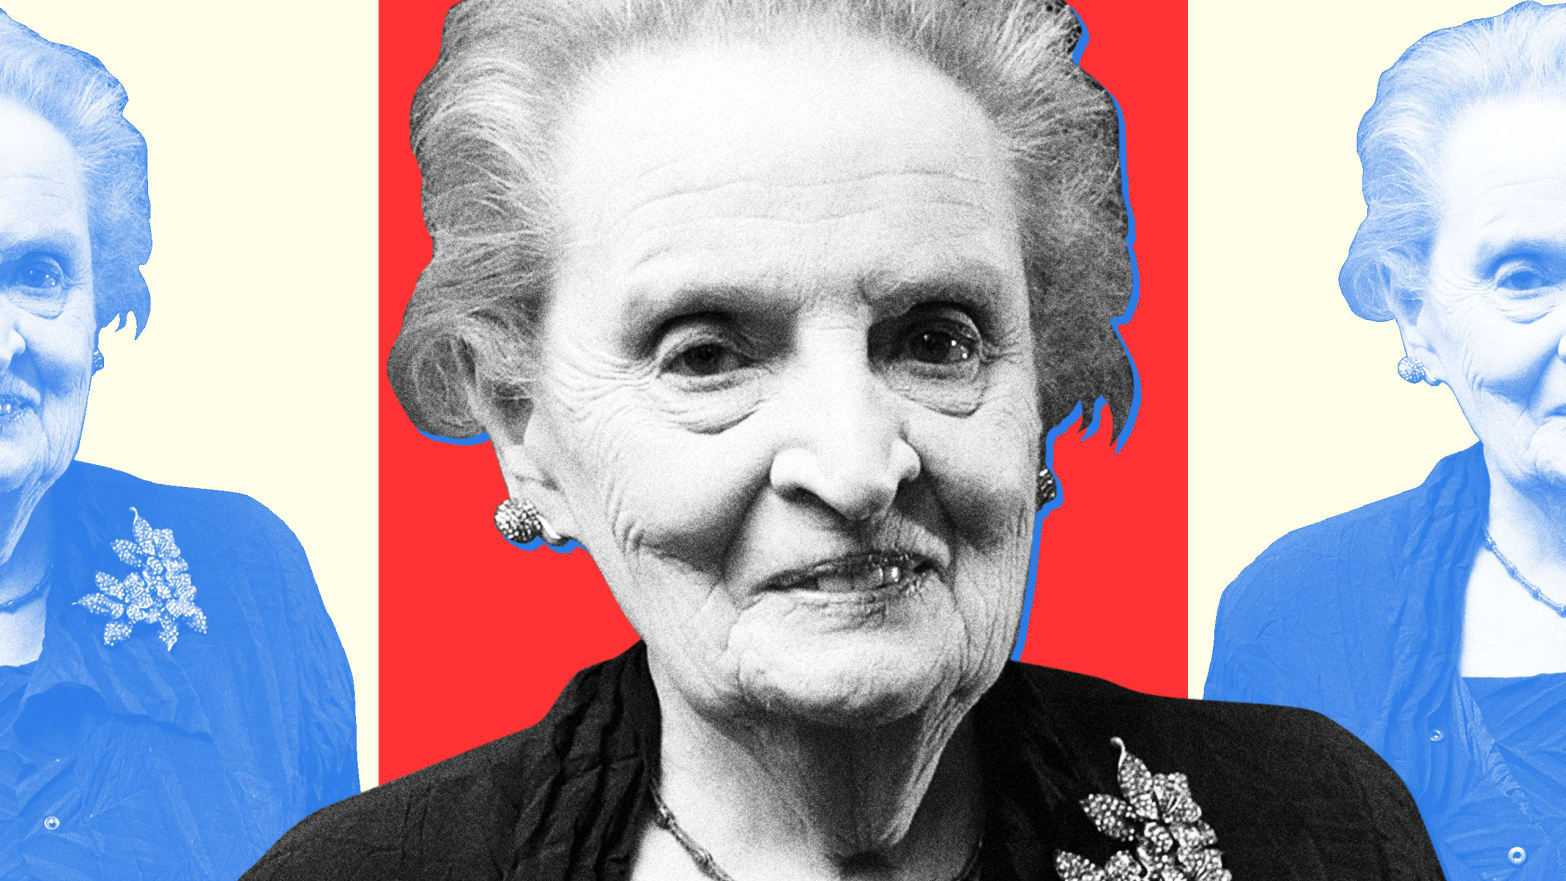 Andrea Lewis Nude madeleine albright knows fascism when she sees it